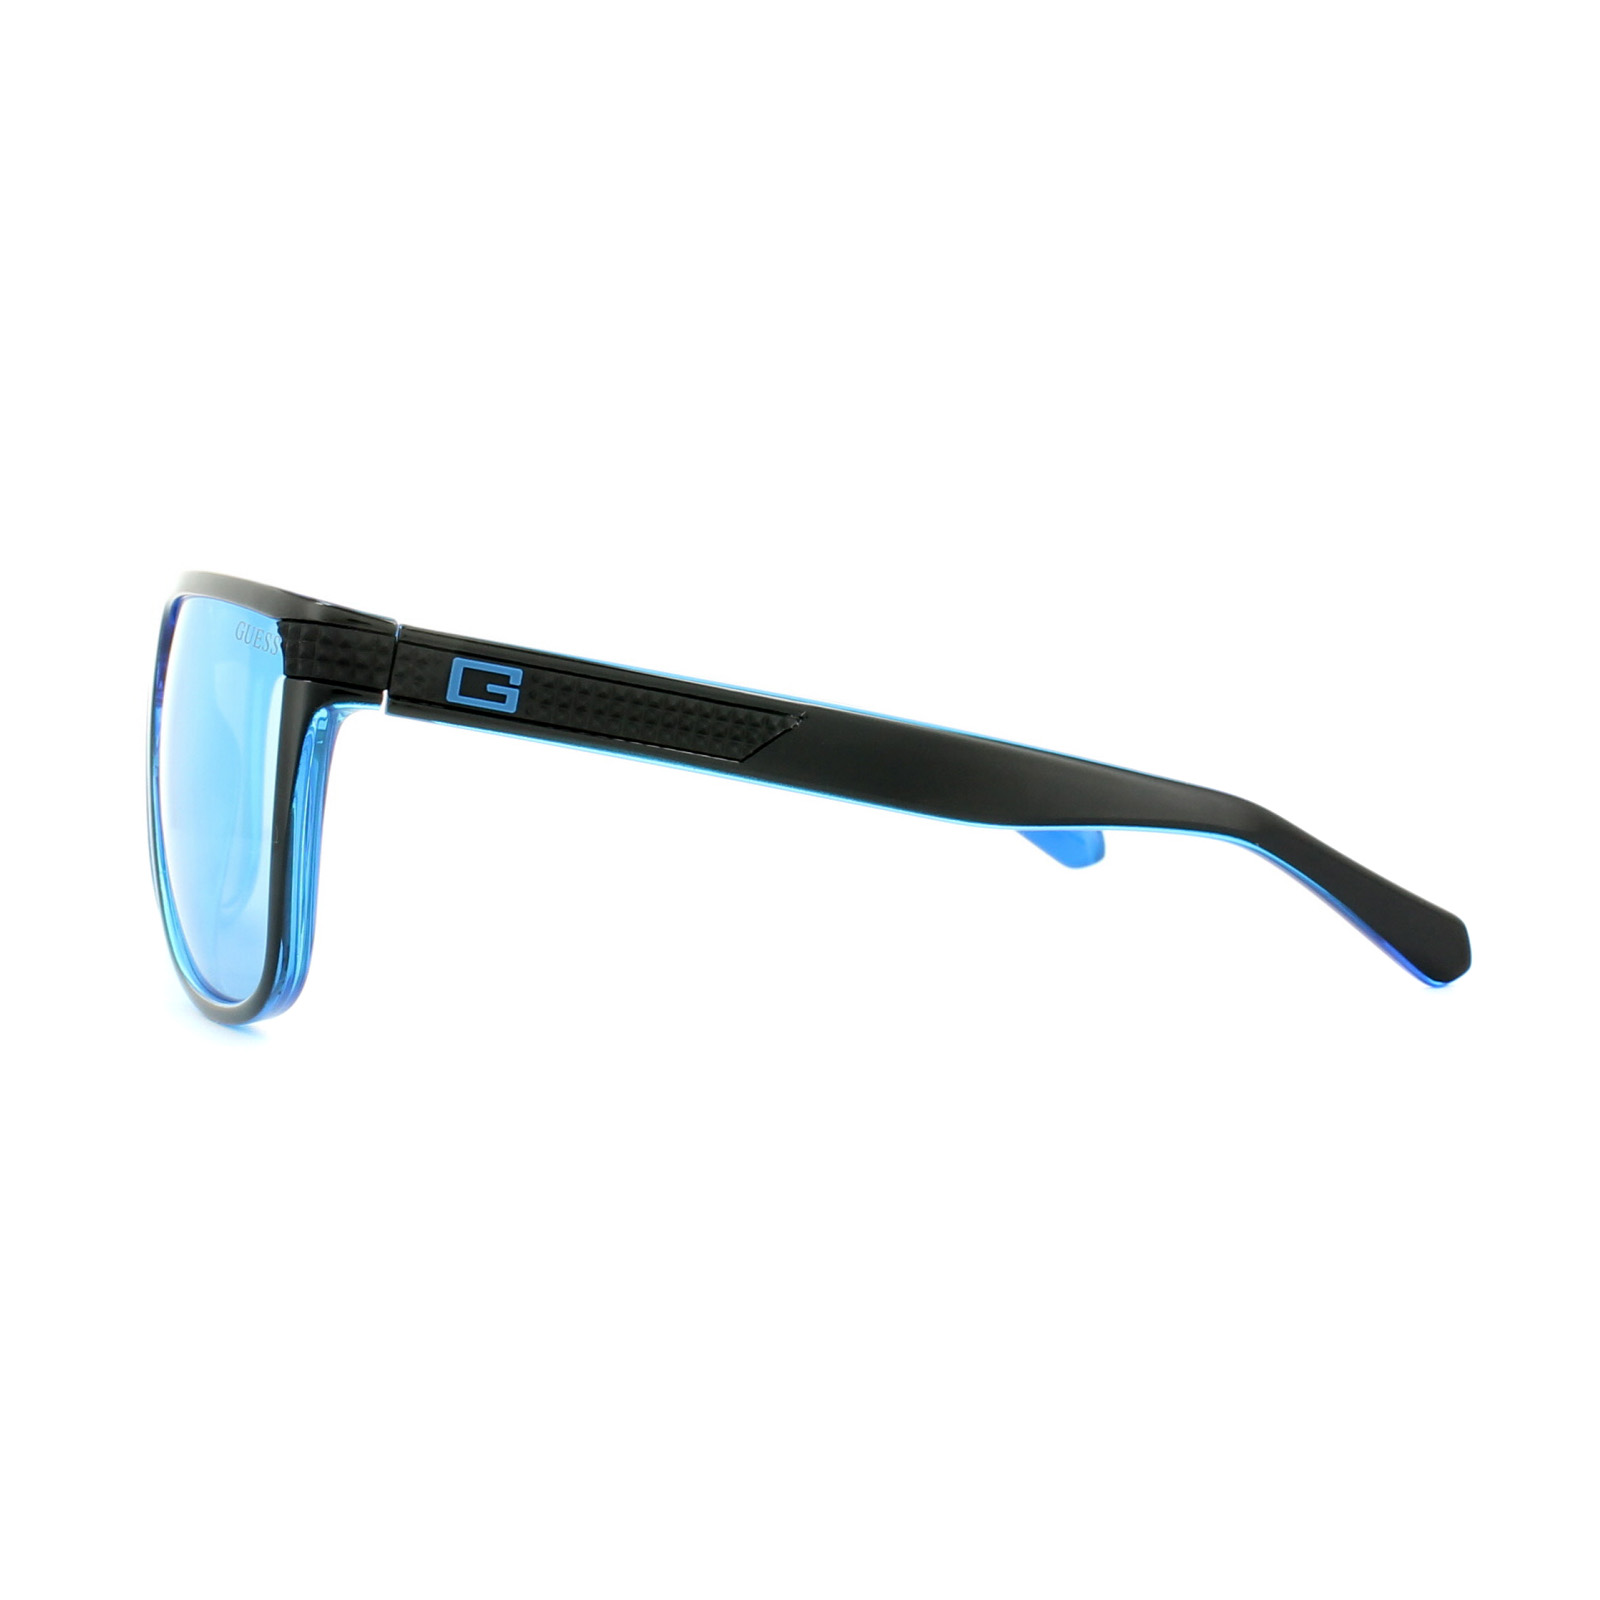 9d85d9472e Cheap Guess GU6837 Sunglasses - Discounted Sunglasses